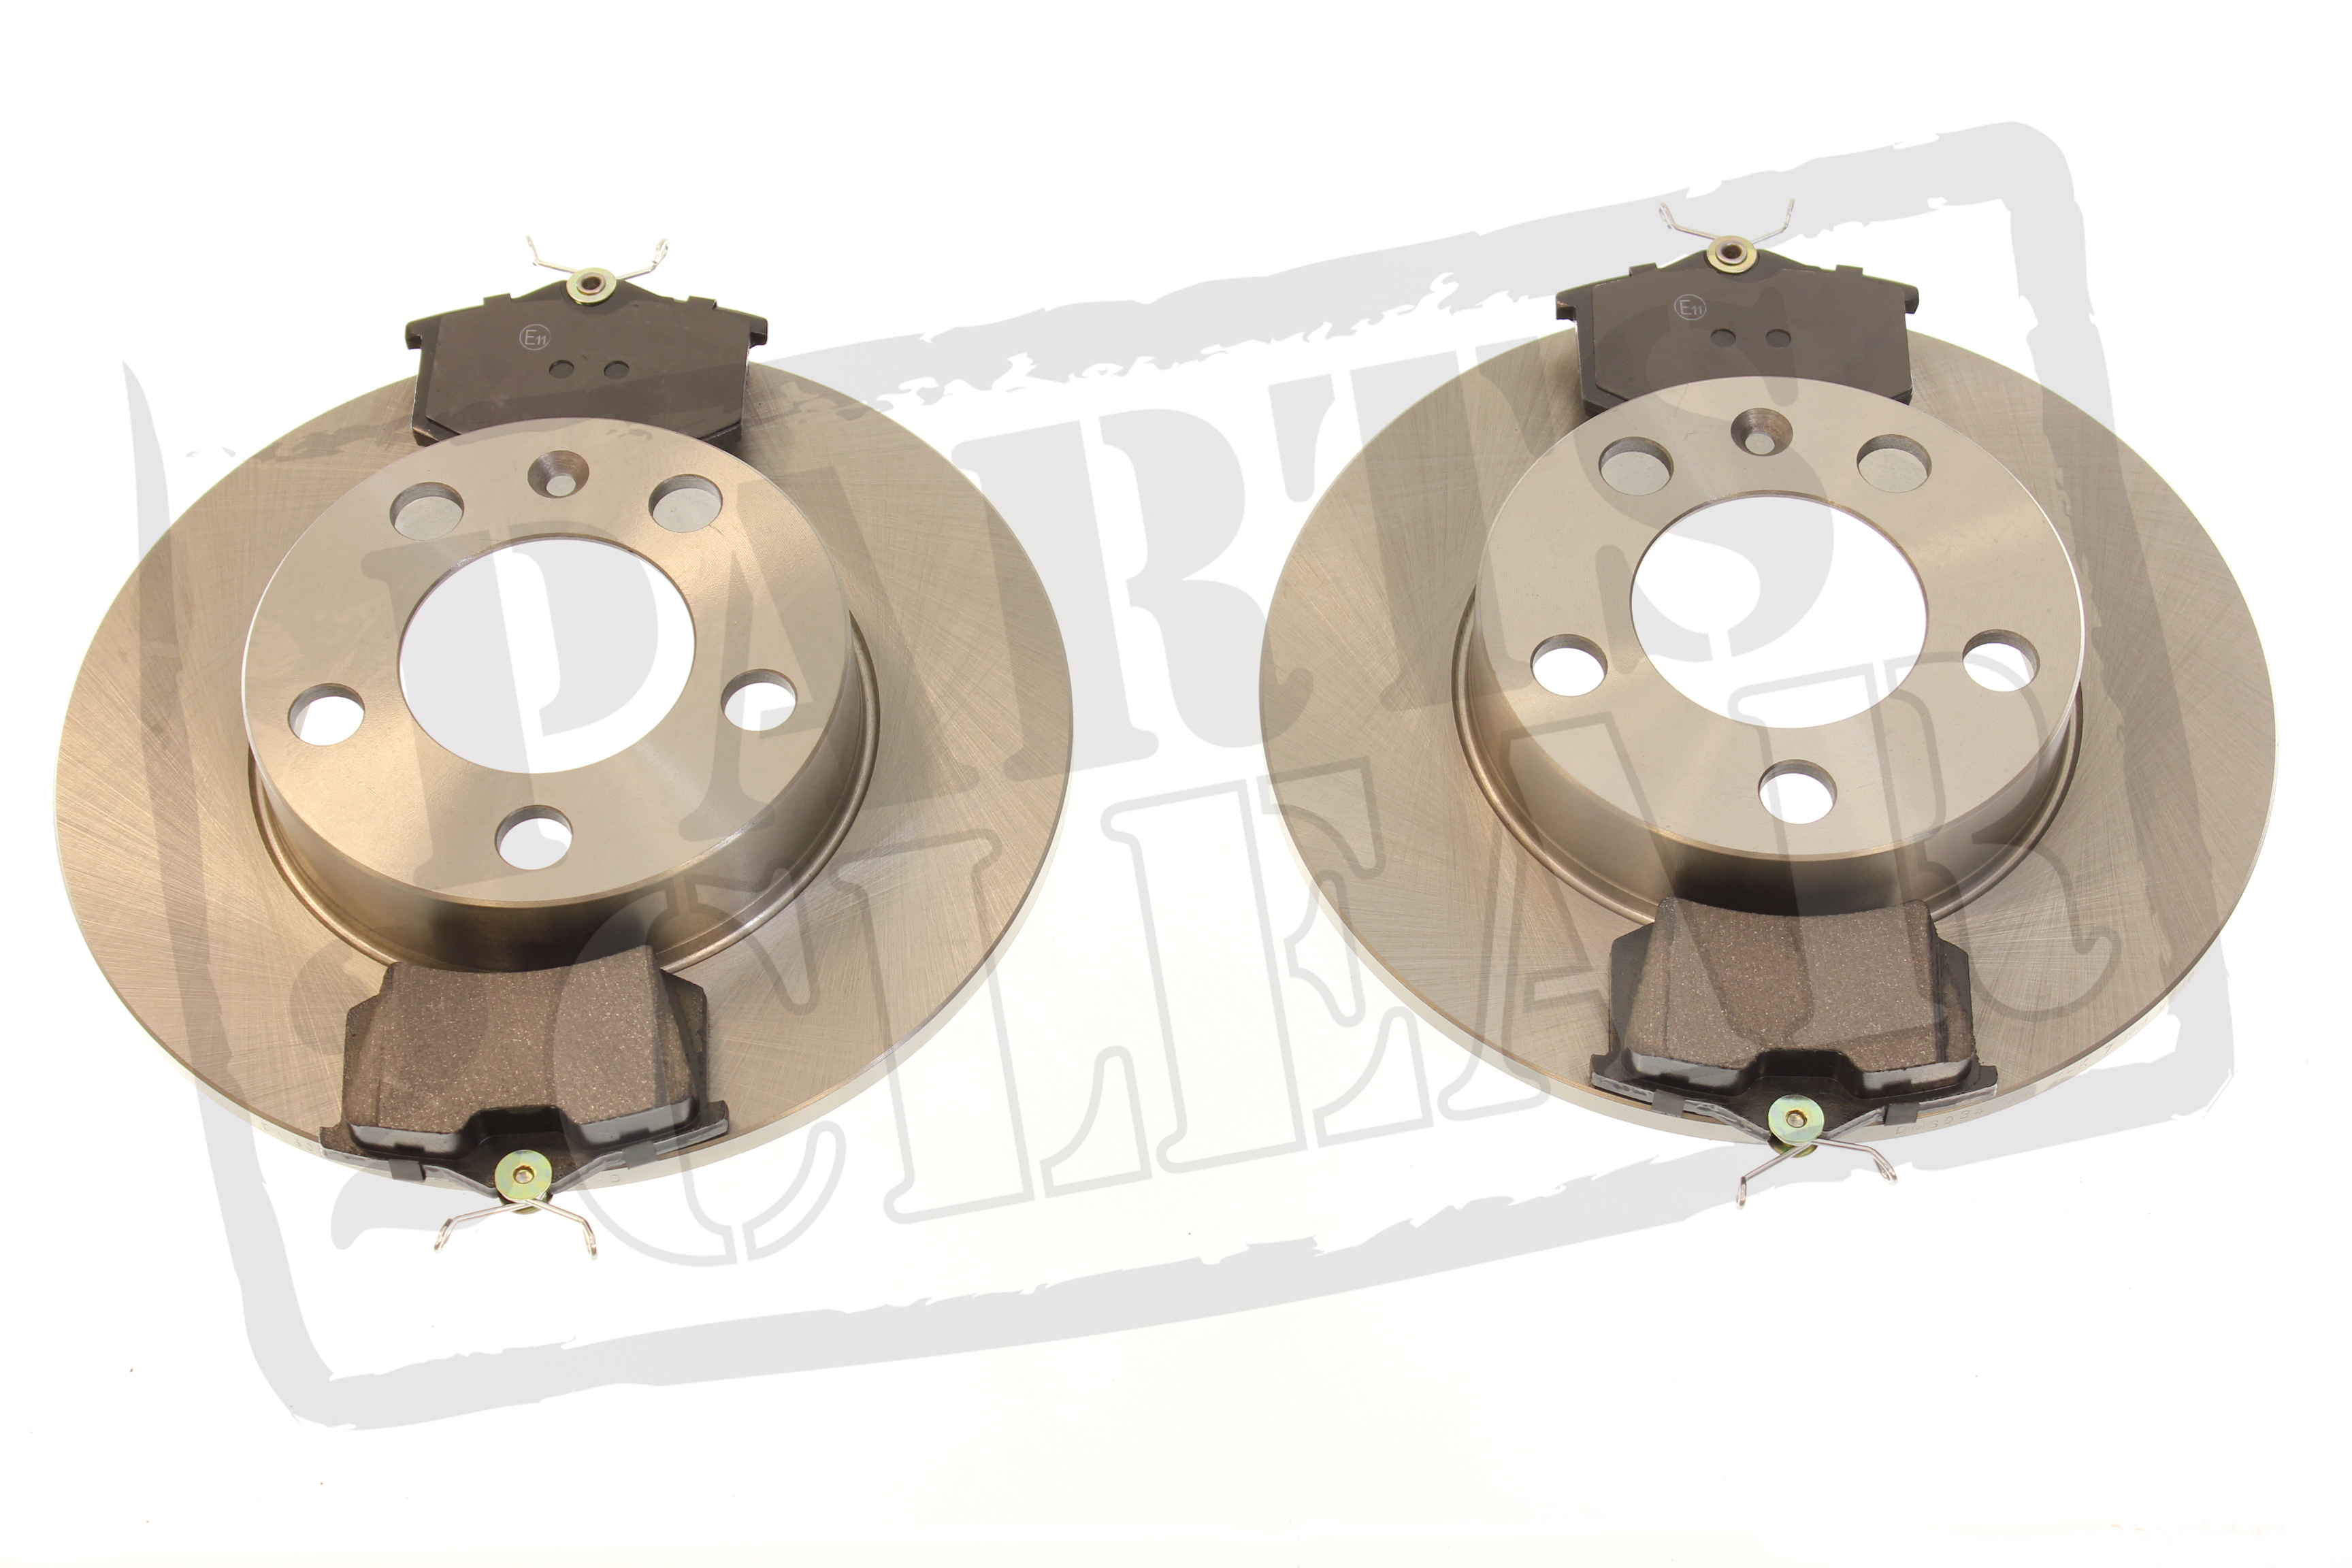 vw golf mk4 1 9 sdi tdi rear brake discs pads 232mm solid 97 04 sdi tdi ebay. Black Bedroom Furniture Sets. Home Design Ideas